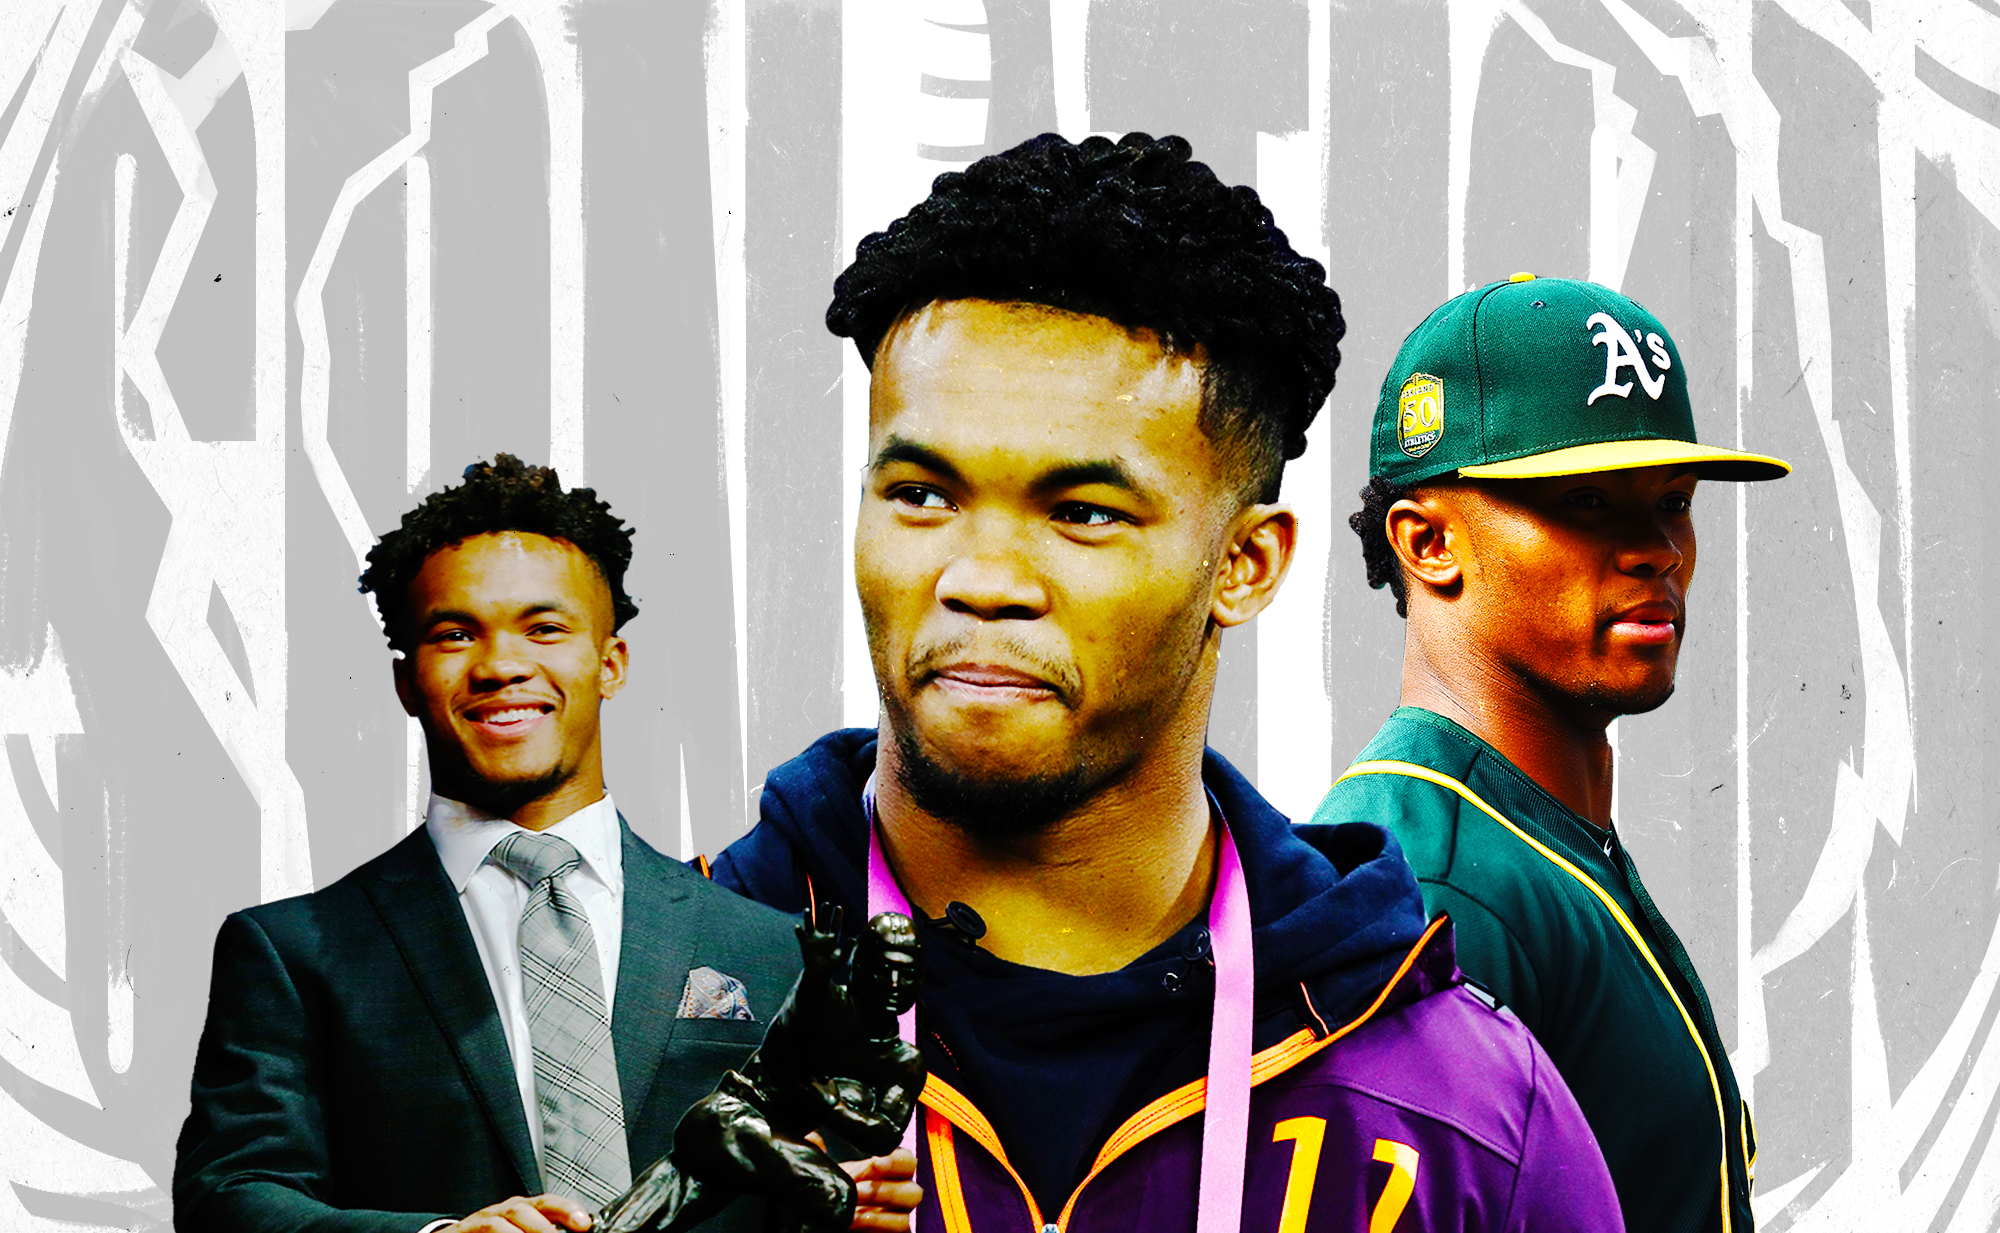 A timeline of how Kyler Murray went from a top baseball prospect to the No. 1 NFL Draft pick